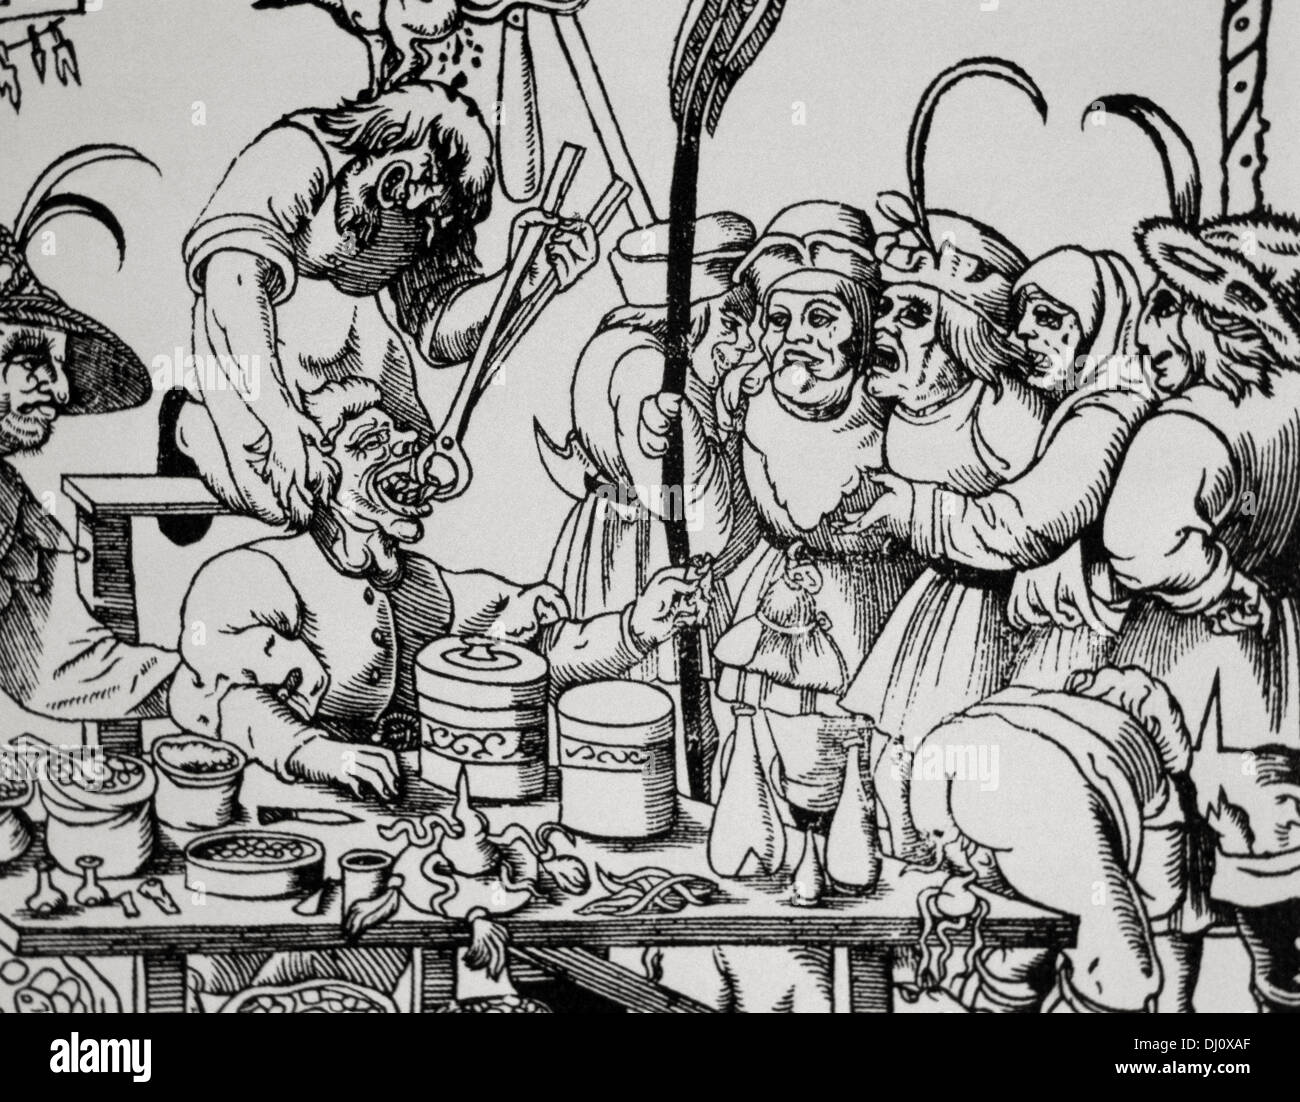 History of medicine. Dentist (barbers or general physicians). Middle Ages. Satire. Engraving. - Stock Image